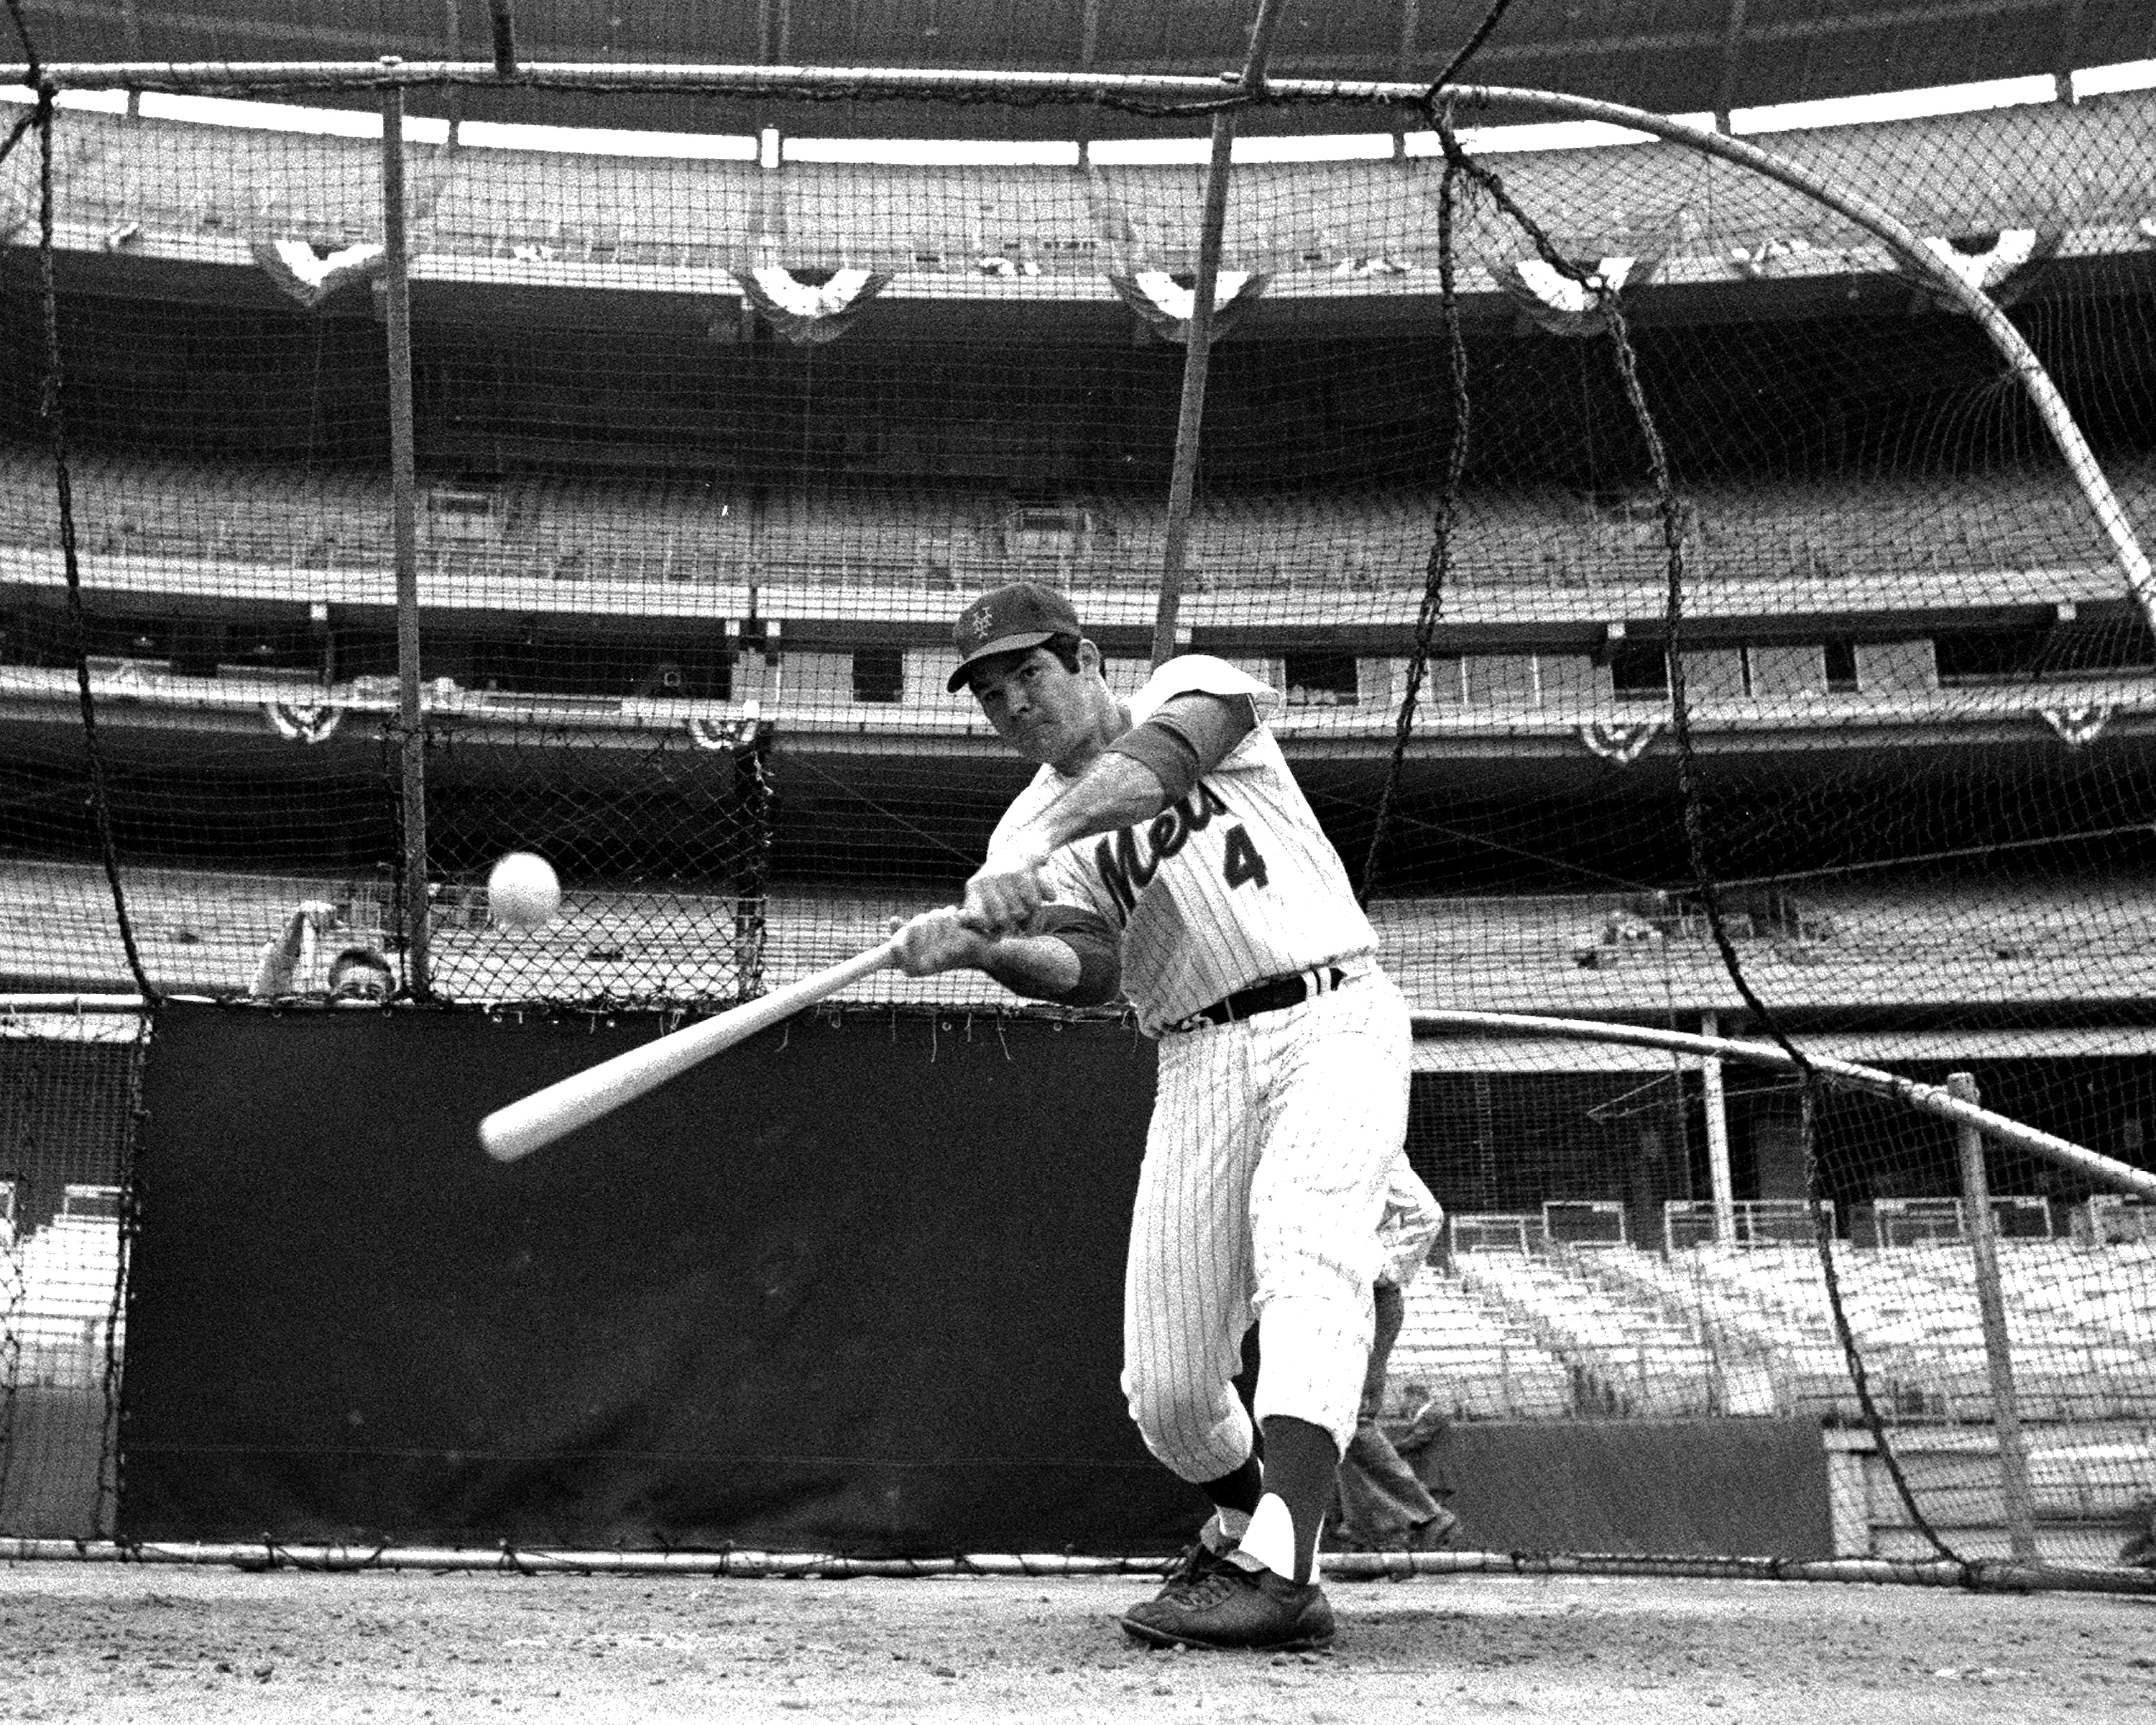 N.Y. Mets Ron Swoboda takeS batting practice prior to Game 3